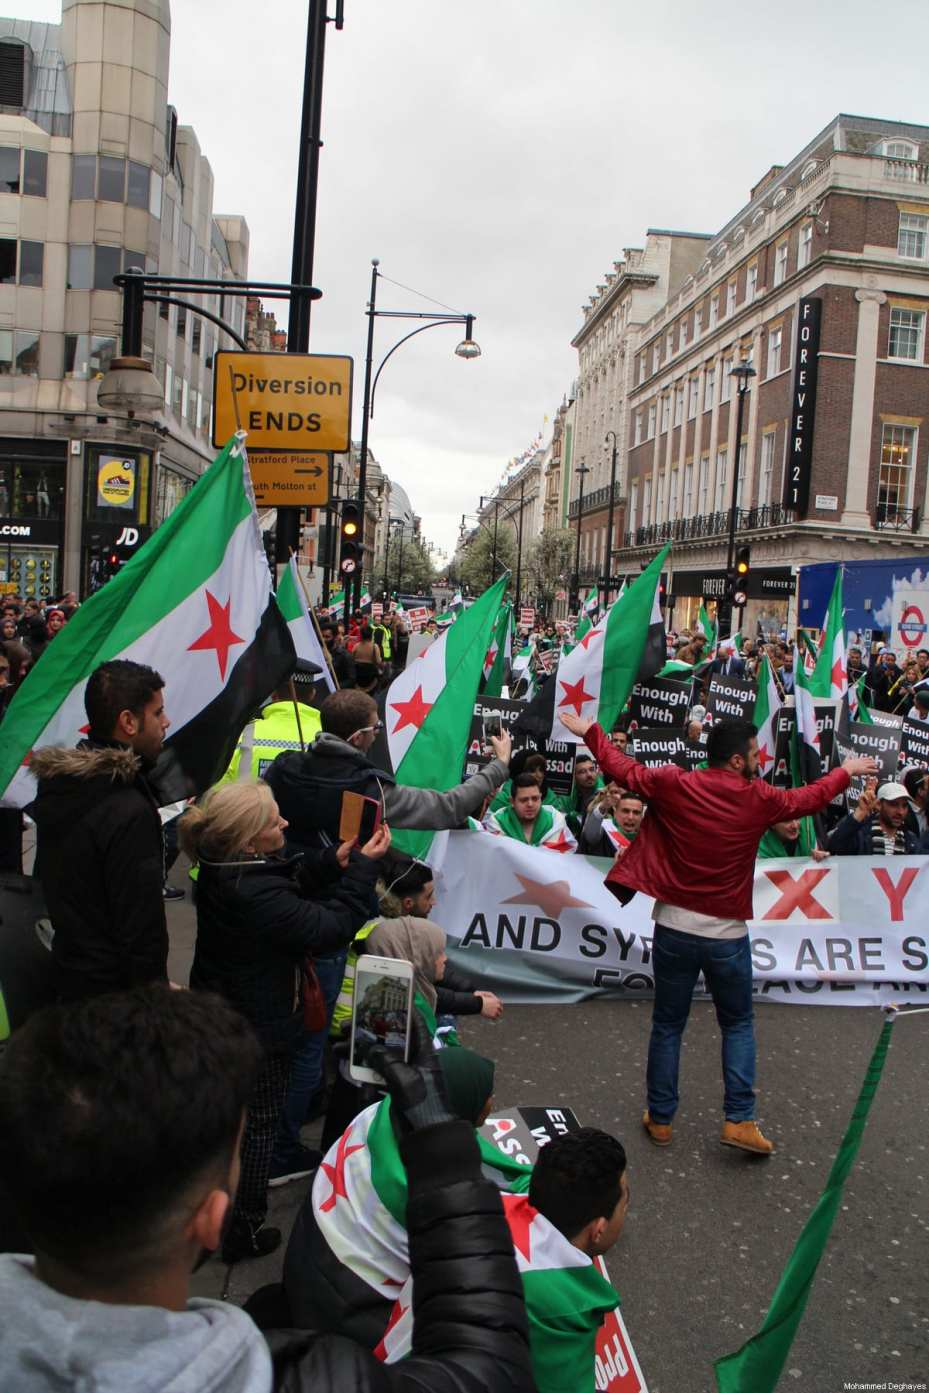 Londoners come out in solidarity with the Syrian people and their struggle against long-time ruler Bashar Al-Assad in London, March 18, 2017 [Mohammed Deghayes / Middle East Monitor]